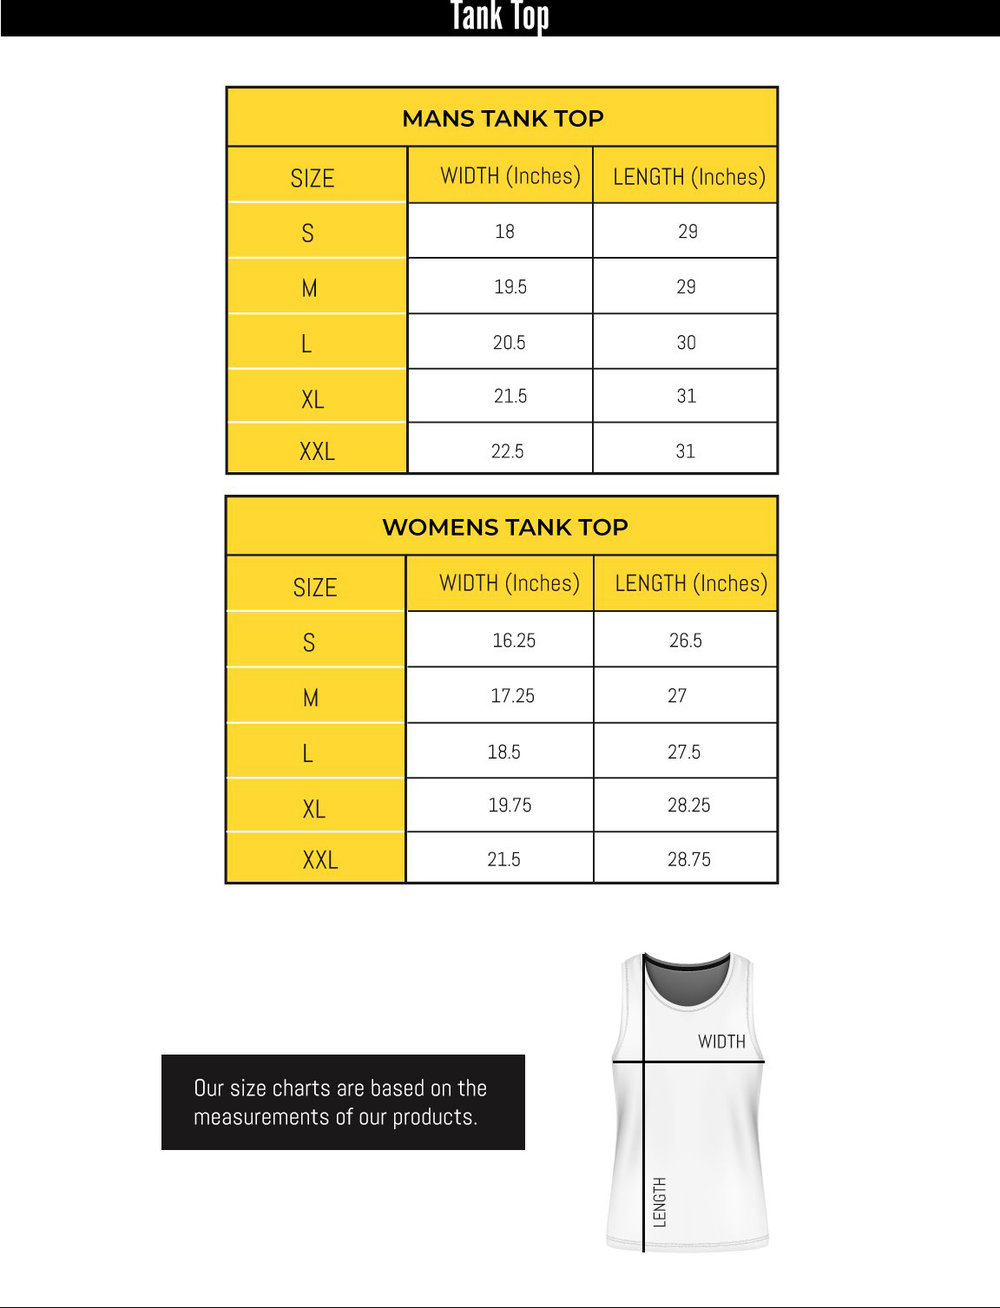 Men's & Women's Tank tops Size Chart.jpg